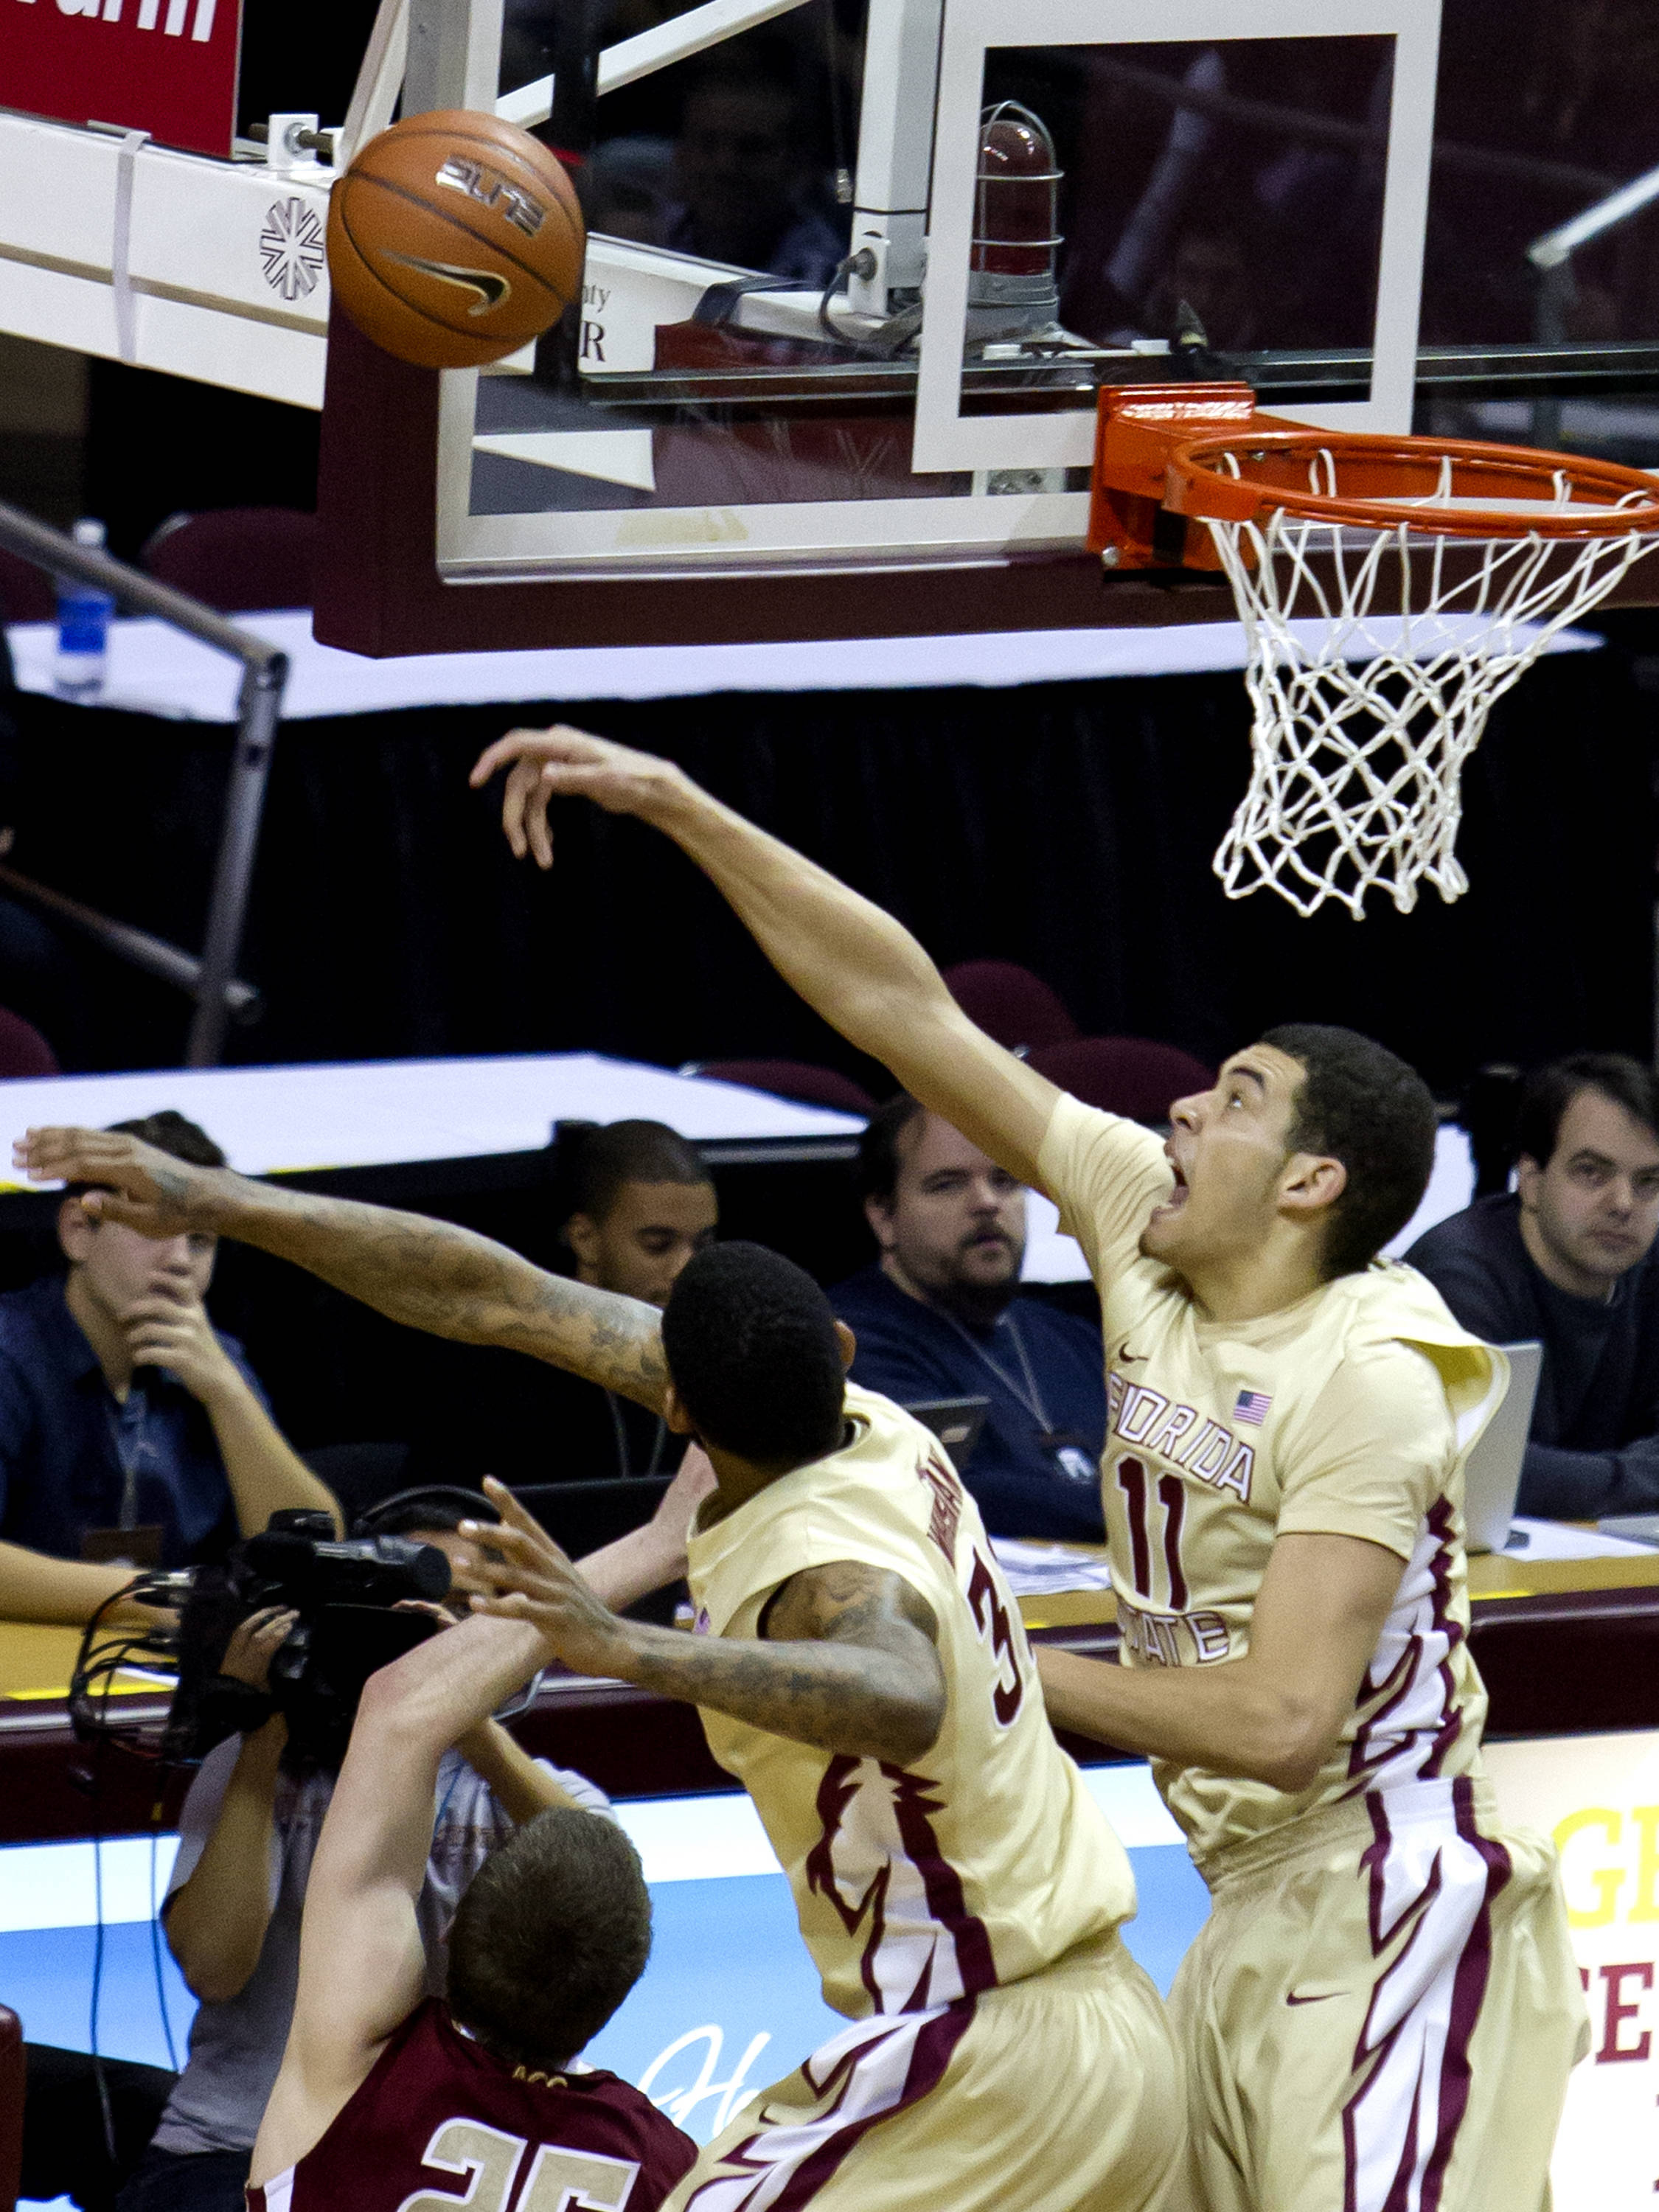 Kiel Turpin (11) with a block, FSU vs BC, 02/16/13. (Photo by Steve Musco)